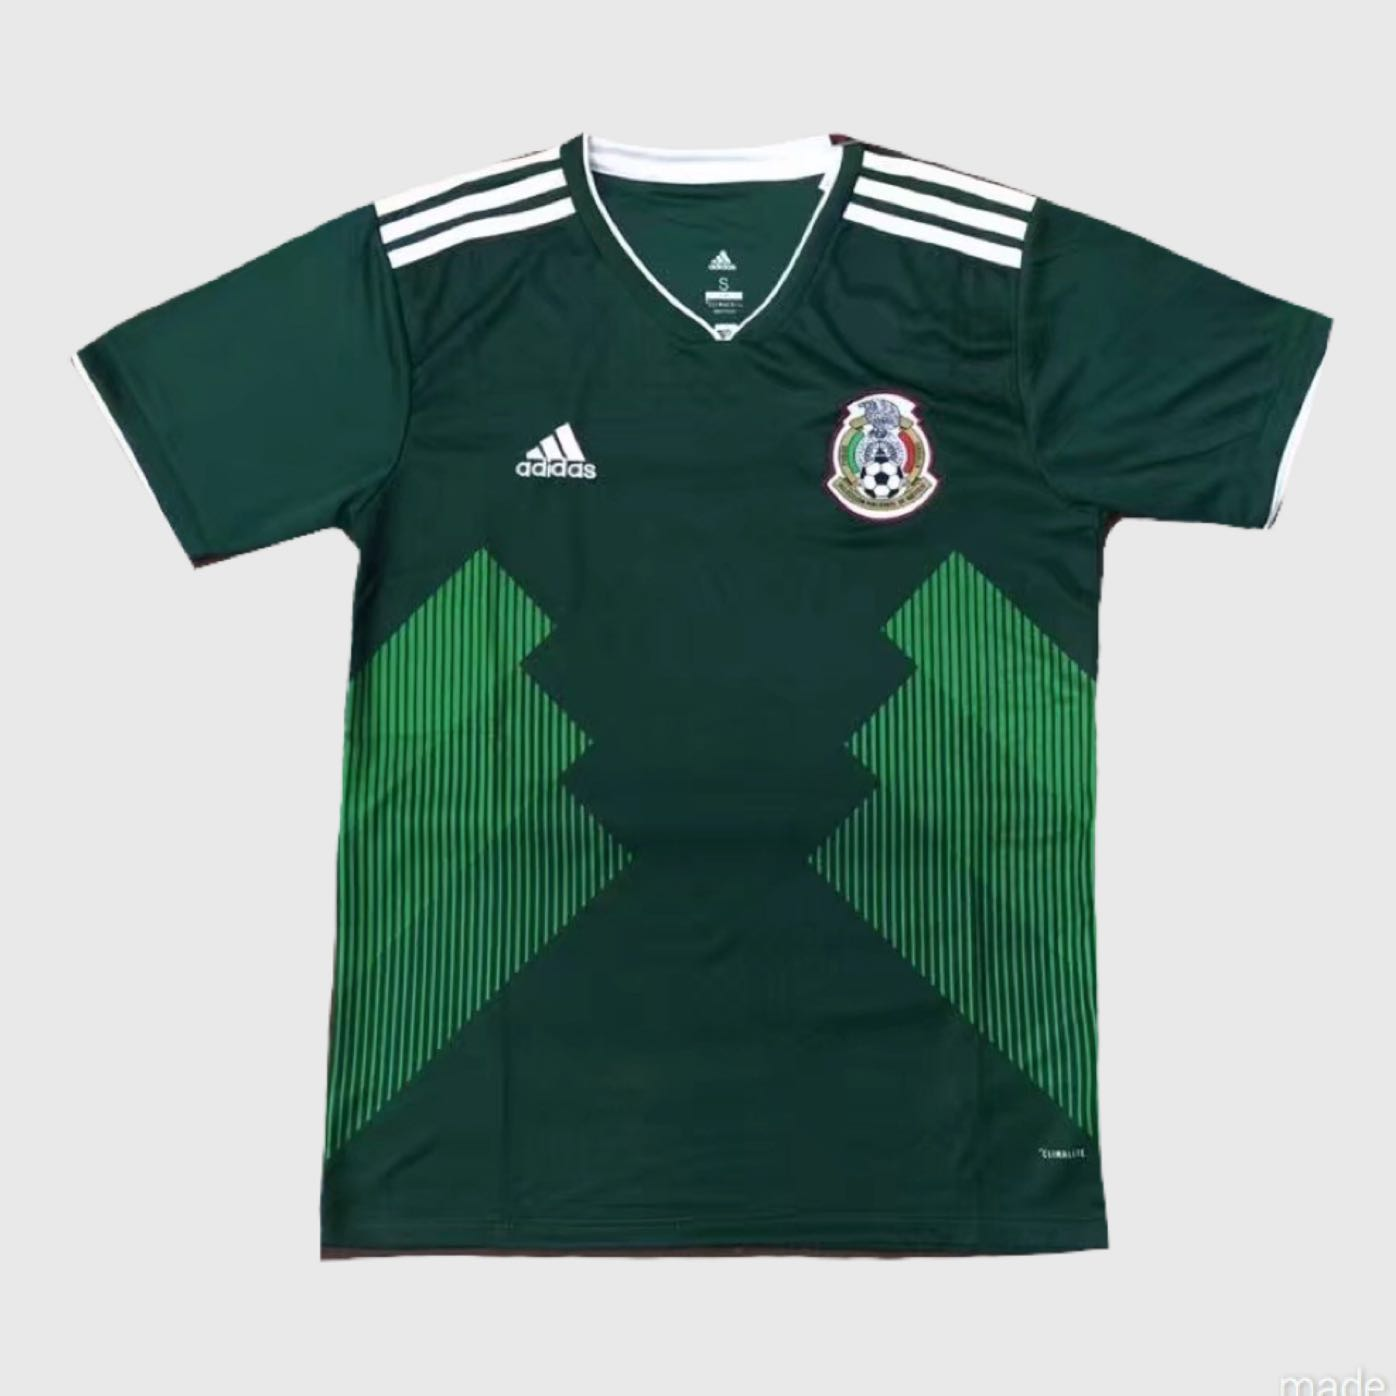 55f8baa63 ❗️SALE❗️Mexico 2018 World Cup Home Away Jersey